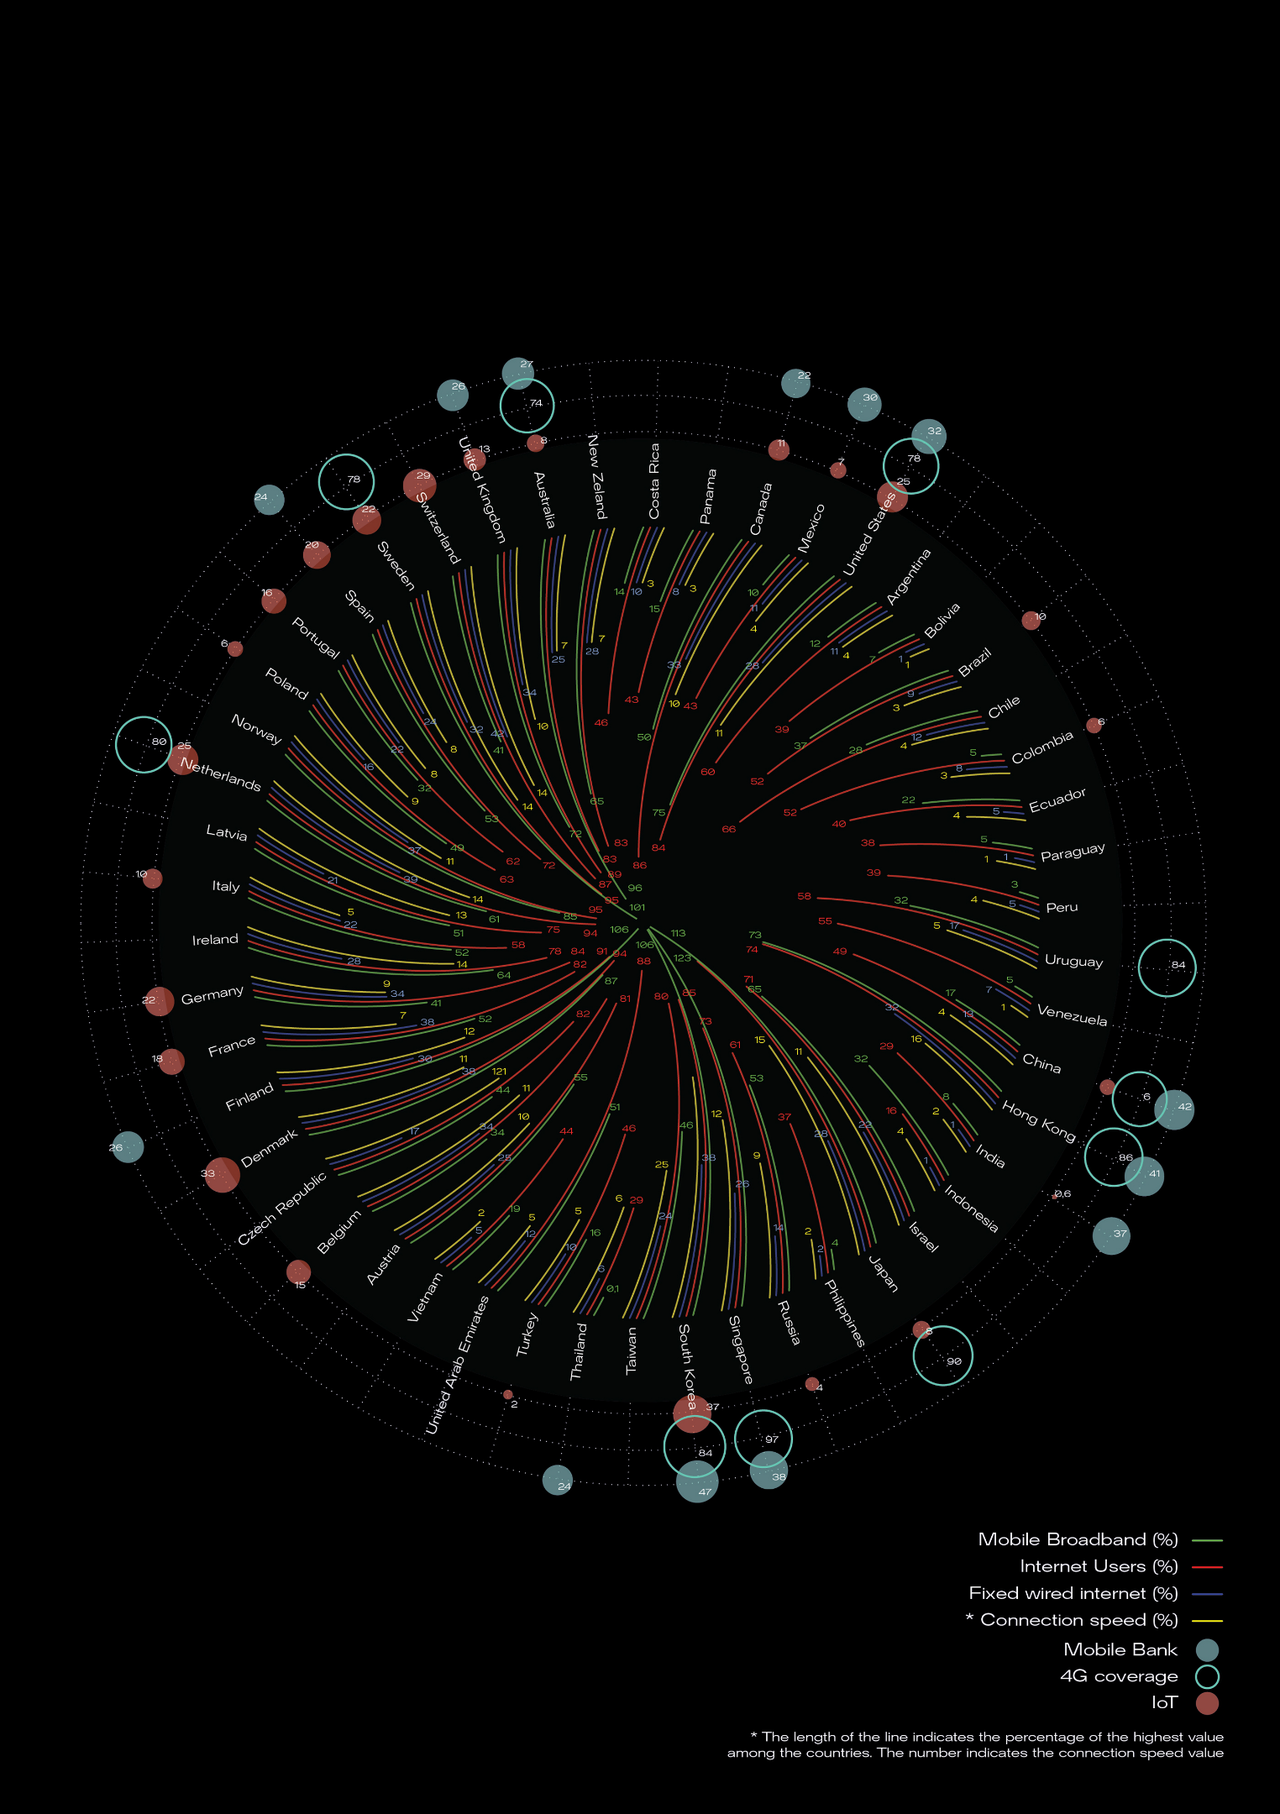 Internet usage shown with data visualization